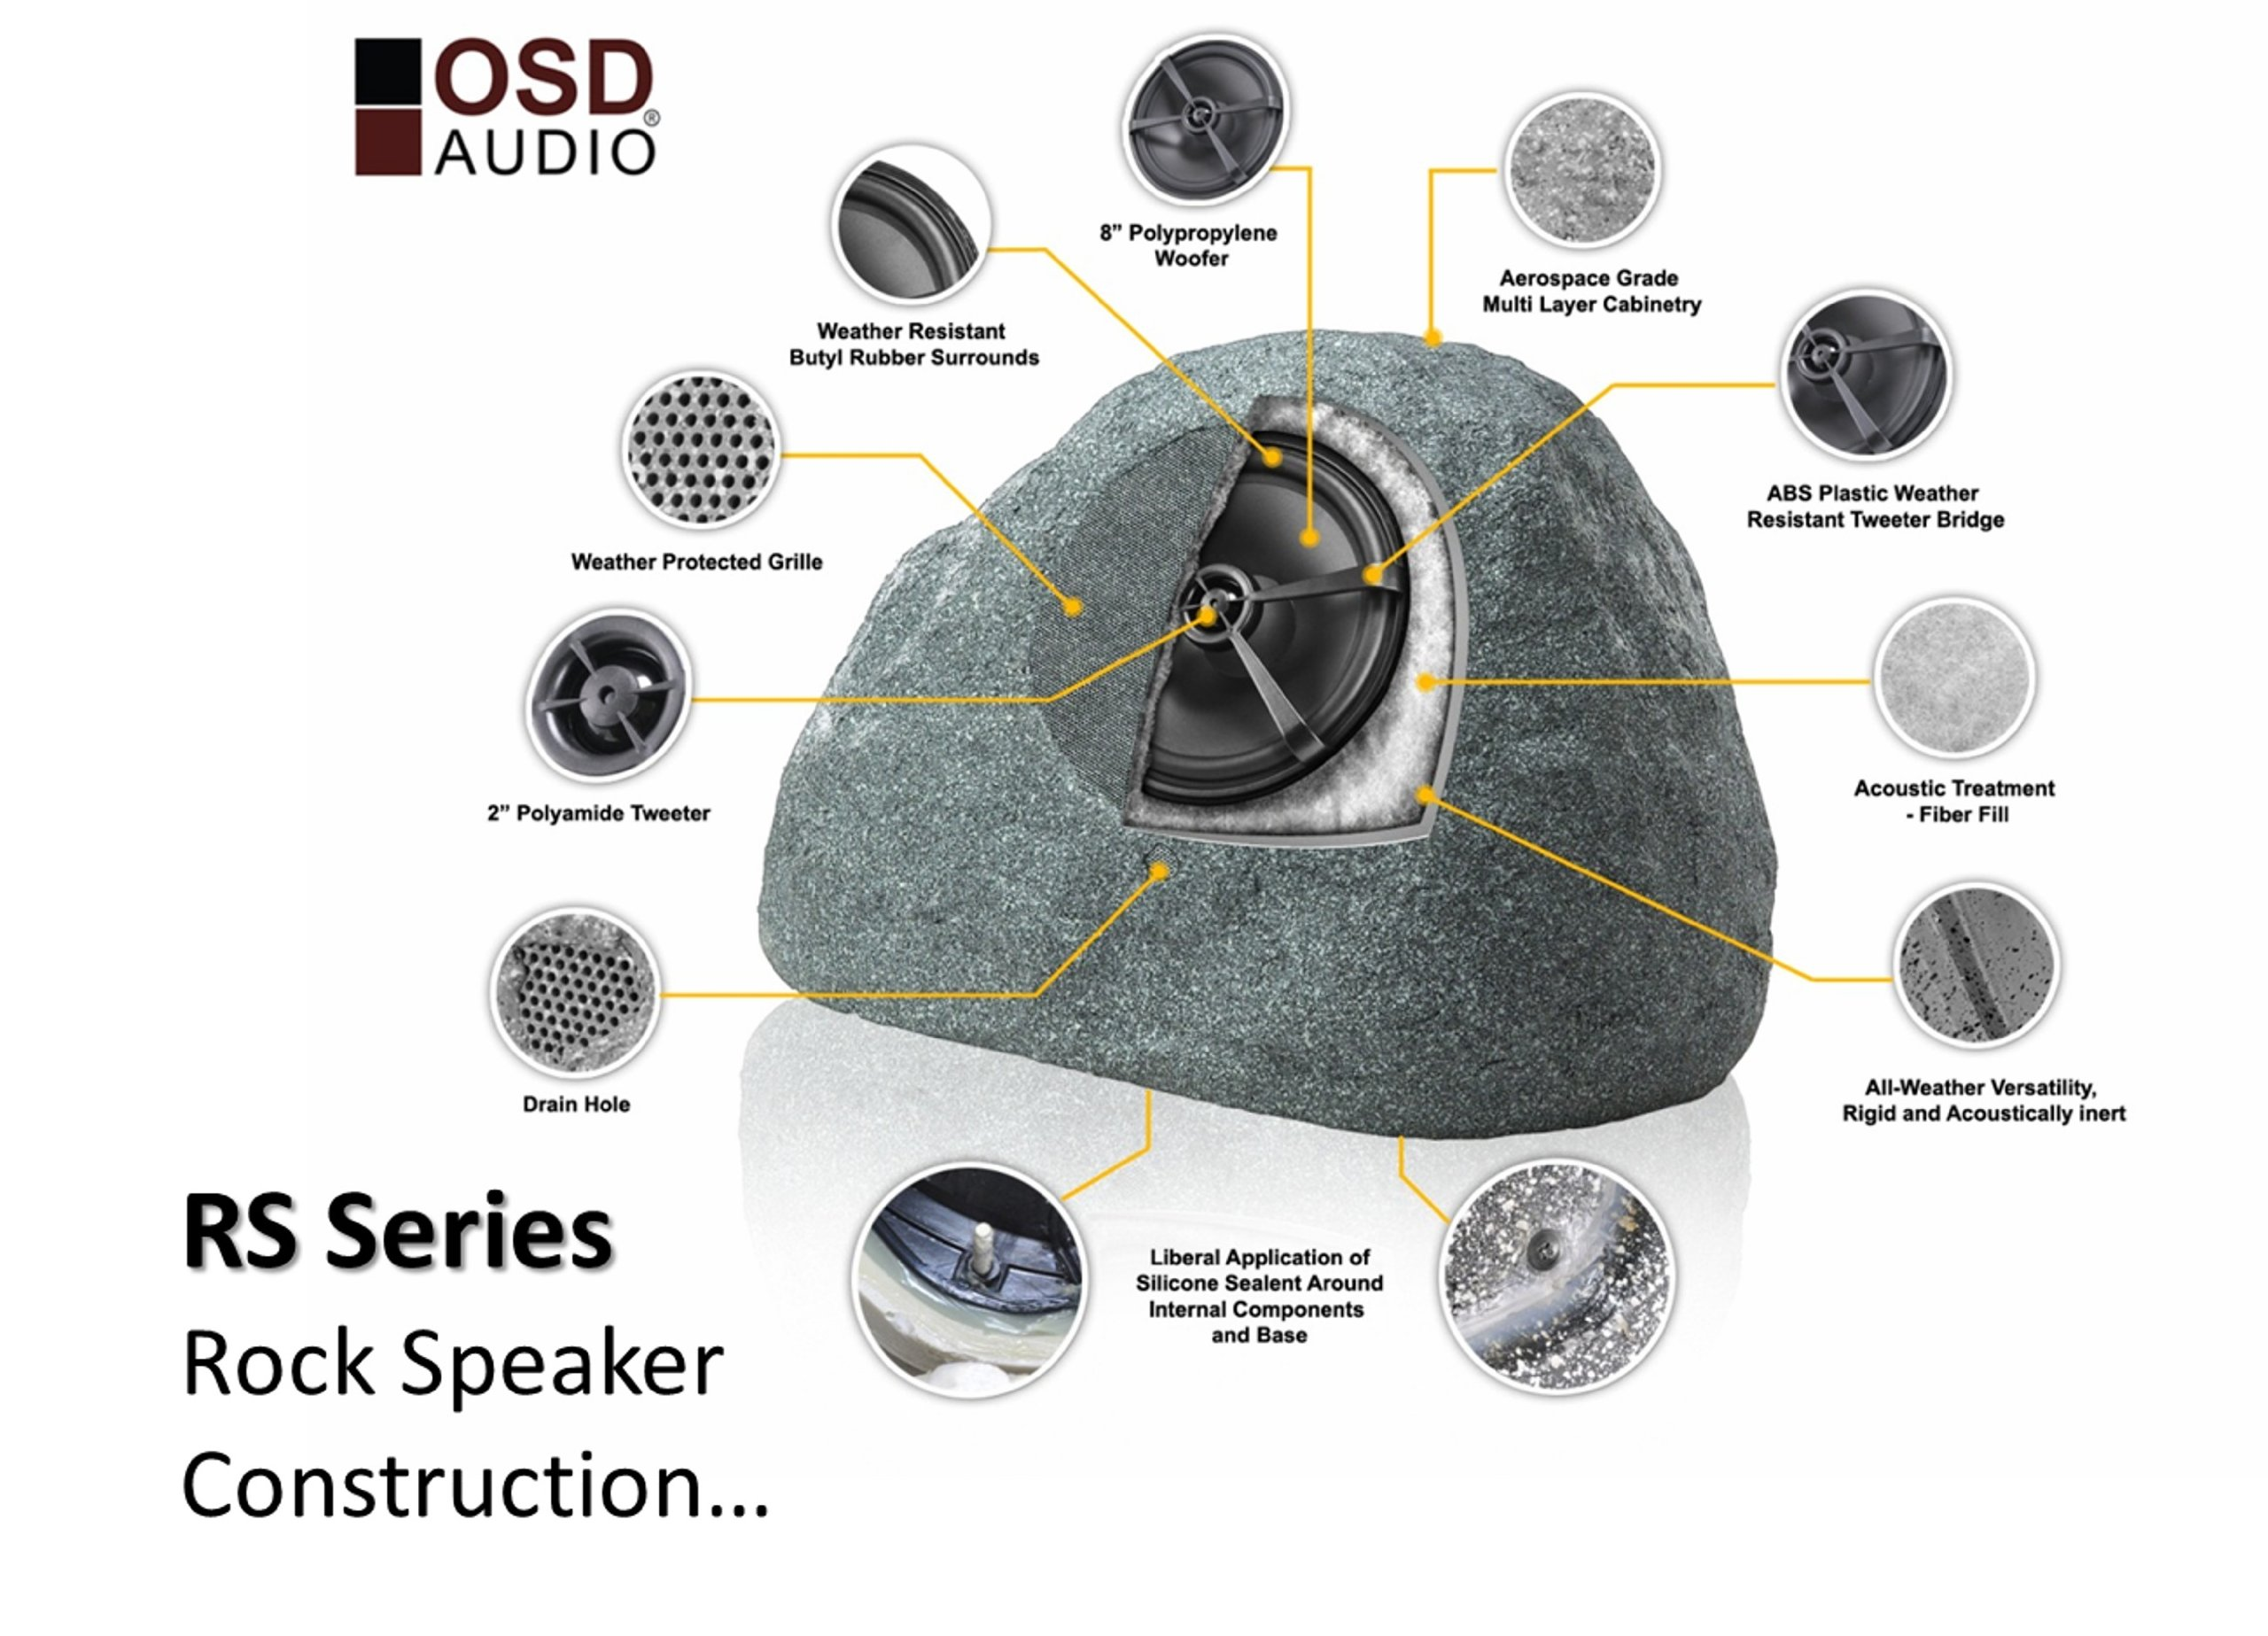 RS850 8-Inch 200W 2-Way High Power Outdoor Weather-Resistant Rock Speaker - OSD Audio - (Single, Granite Grey)